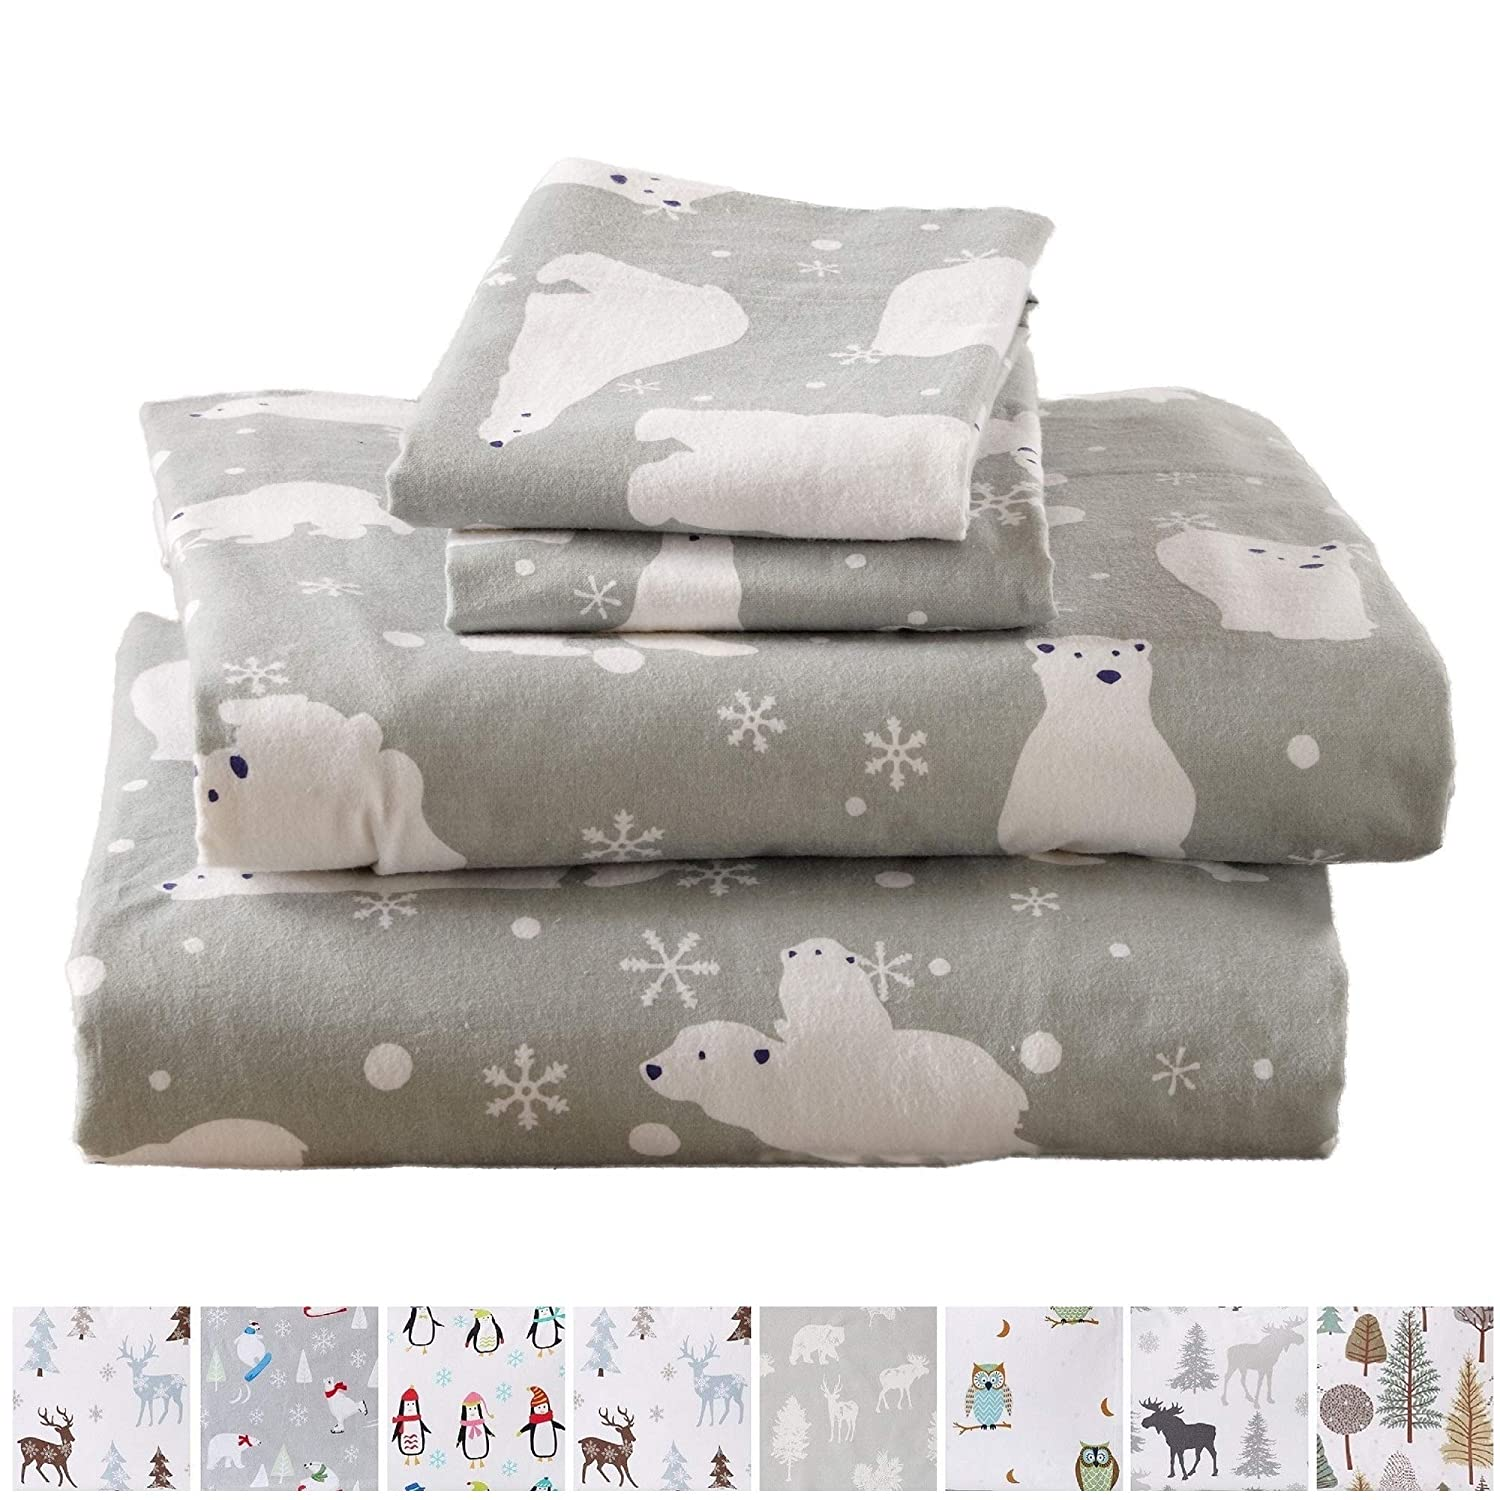 Home Fashion Designs Flannel Sheets Queen Winter Bed Sheets Flannel Sheet Set Grey Polar Bears Flannel Sheets 100% Turkish Cotton Flannel Sheet Set. Stratton Collection (Queen, Grey Polar Bears)